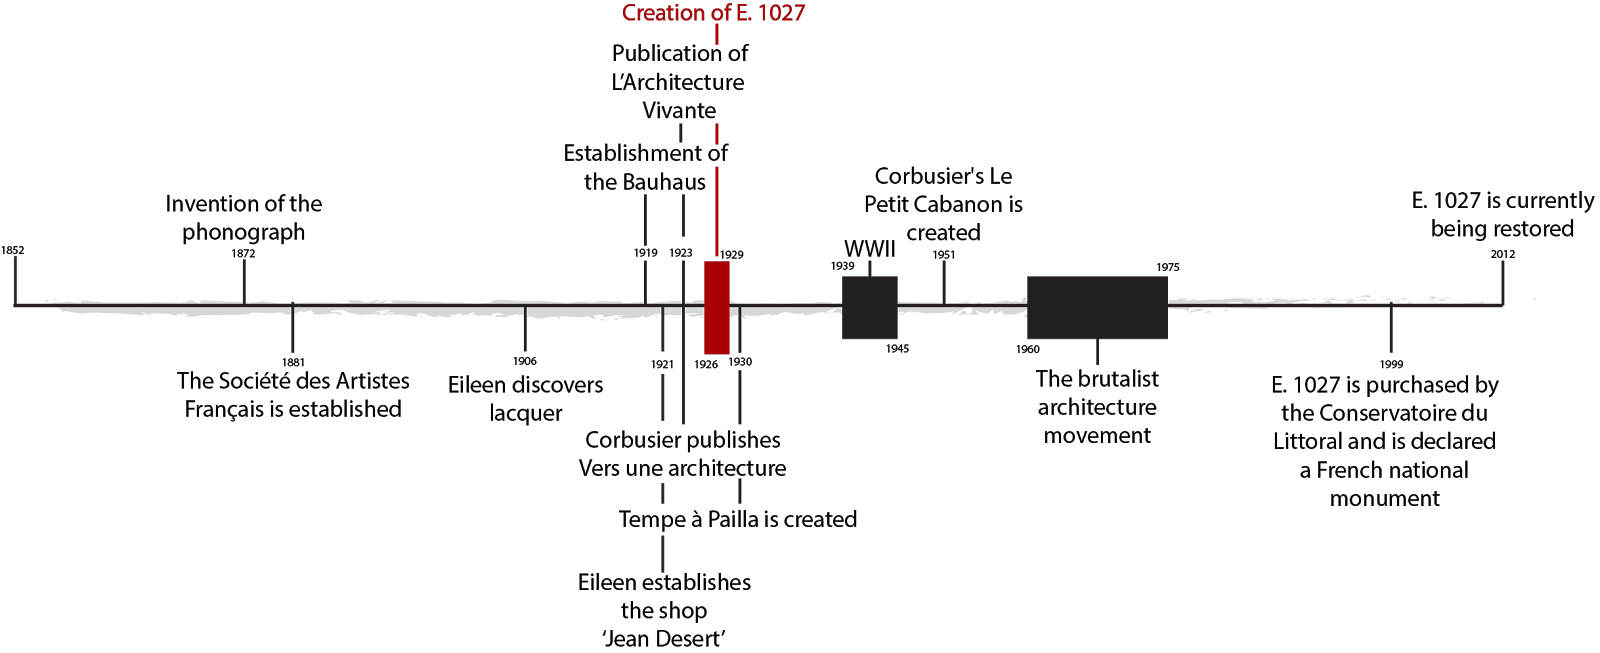 e 1027 the cultural and historical timeline of e 1027